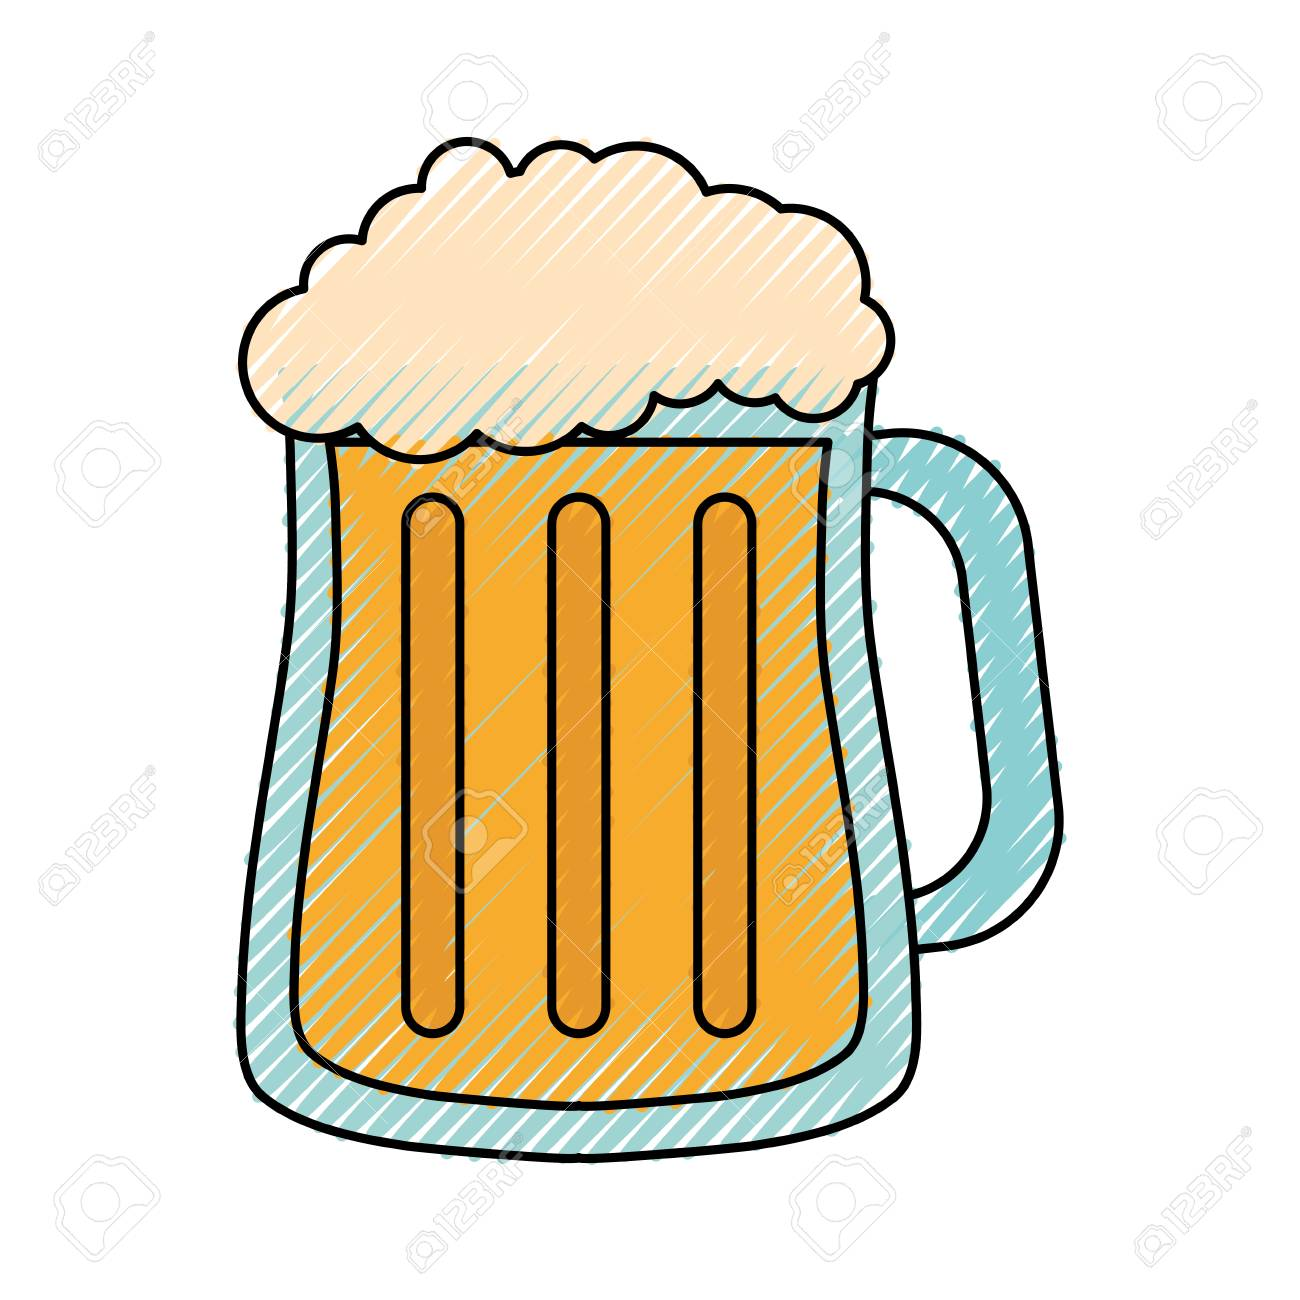 Colored Beer Glass Doodle Over White Background Vector Illustration Royalty Free Cliparts Vectors And Stock Illustration Image 94573320